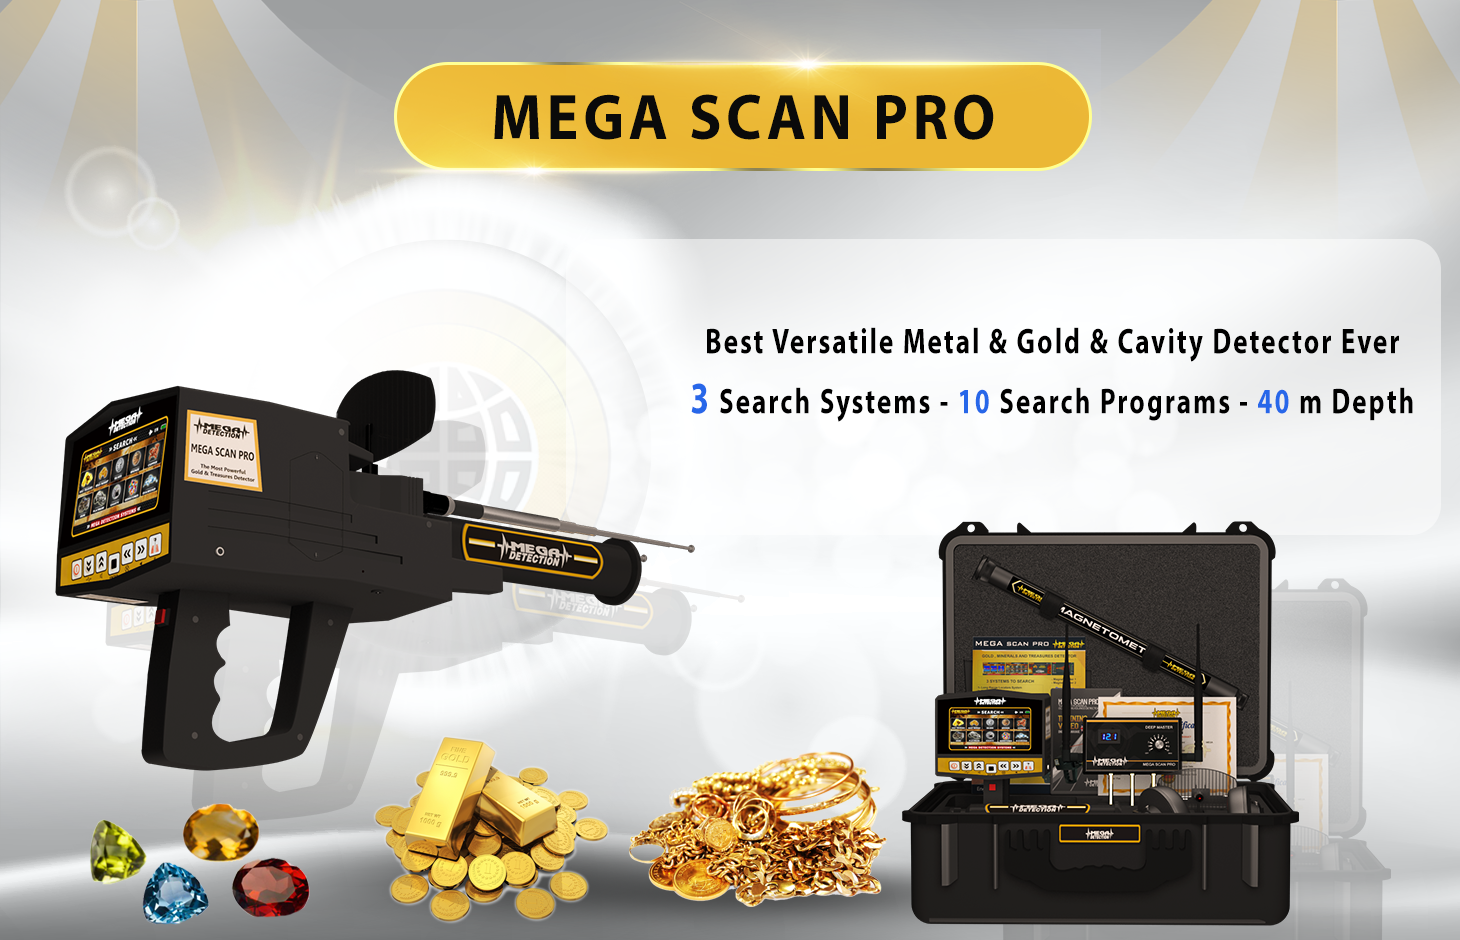 Best Professional Metal Detector 2020 Mega Scan Pro 2019 | Long Rang Locators Systems | Gold Detectors